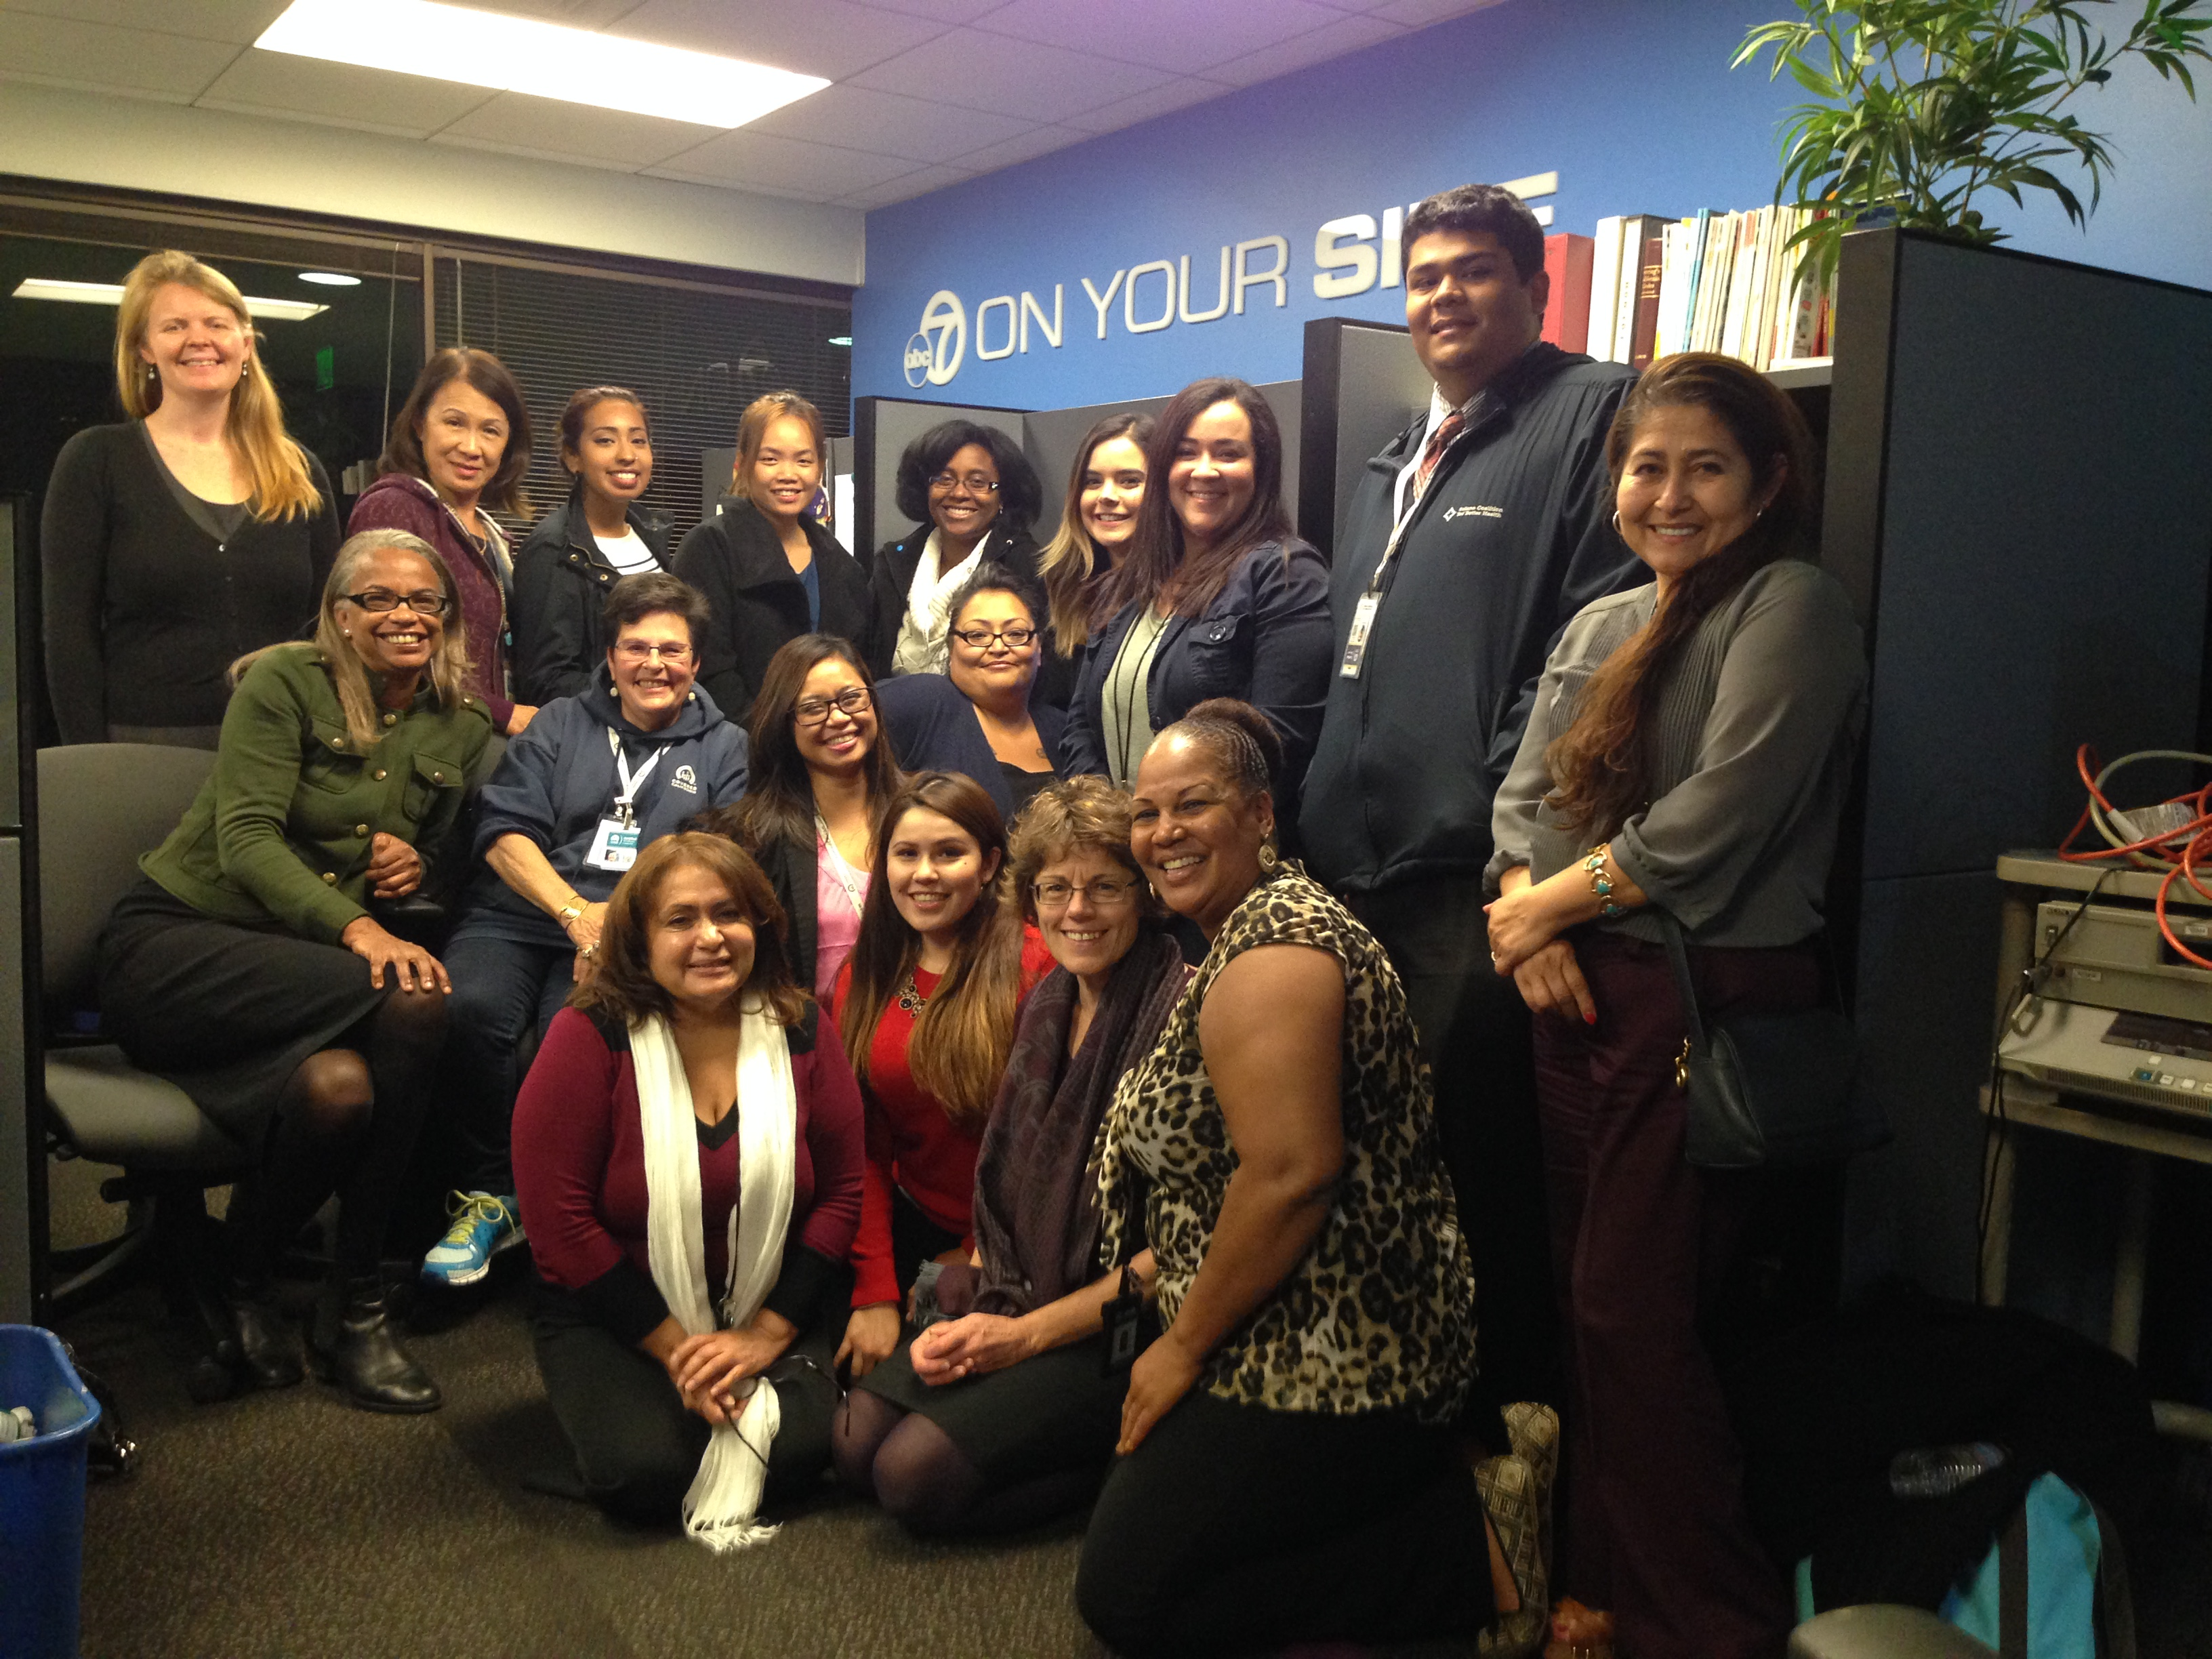 SKIP Representatives attend Covered California Call Center event!